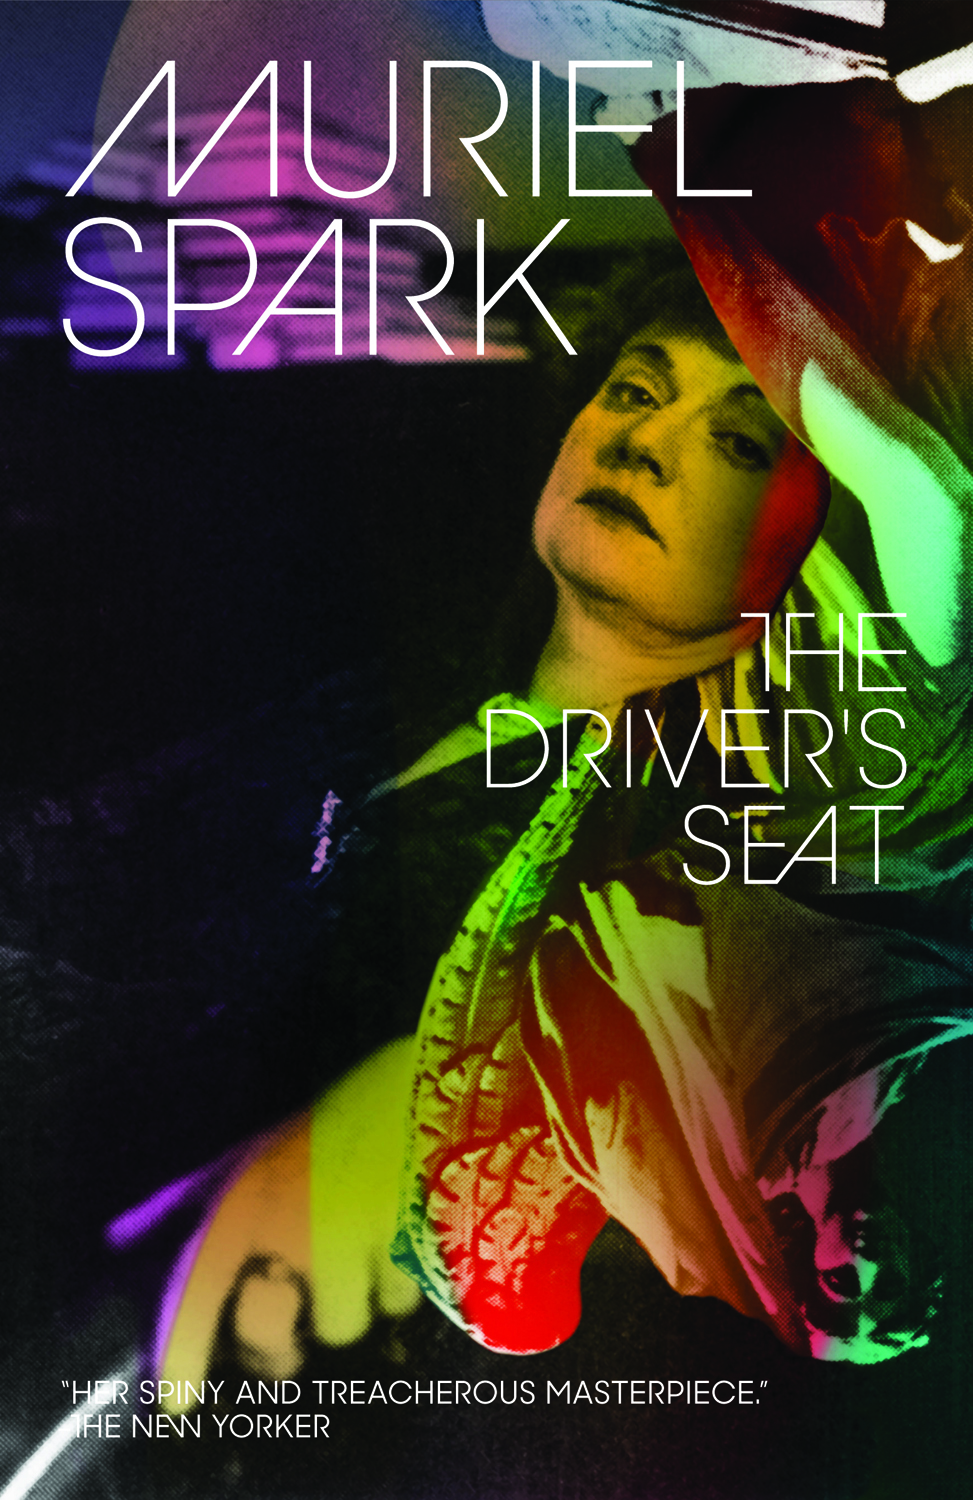 The Driver's Seat, by Muriel Spark 1970